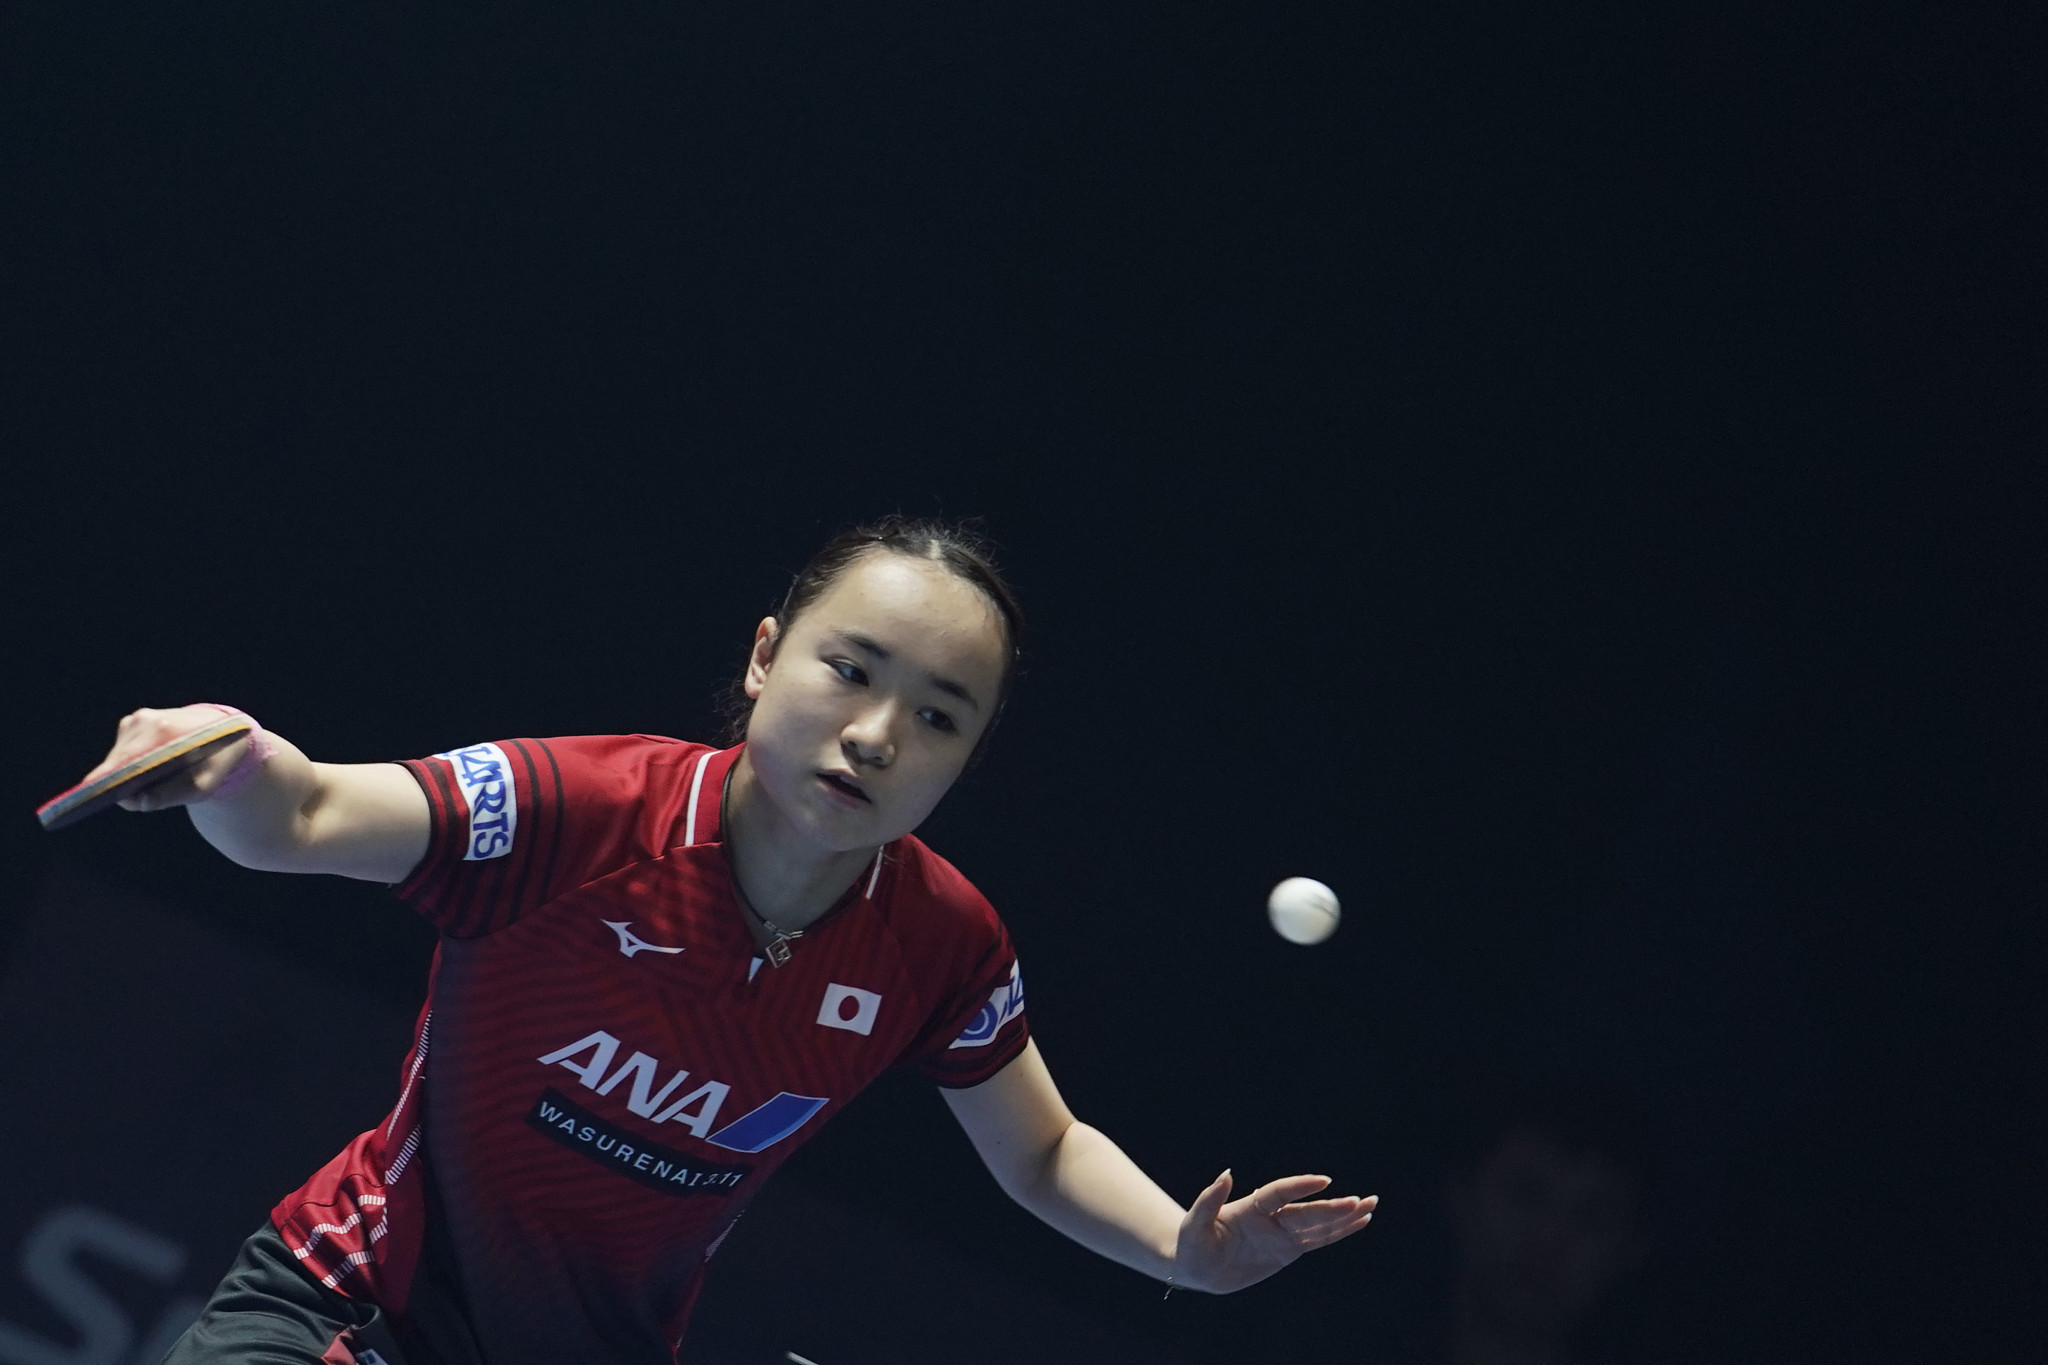 World number three Mima Ito will feature in the Japanese women's table tennis team at Tokyo 2020 ©Getty Images